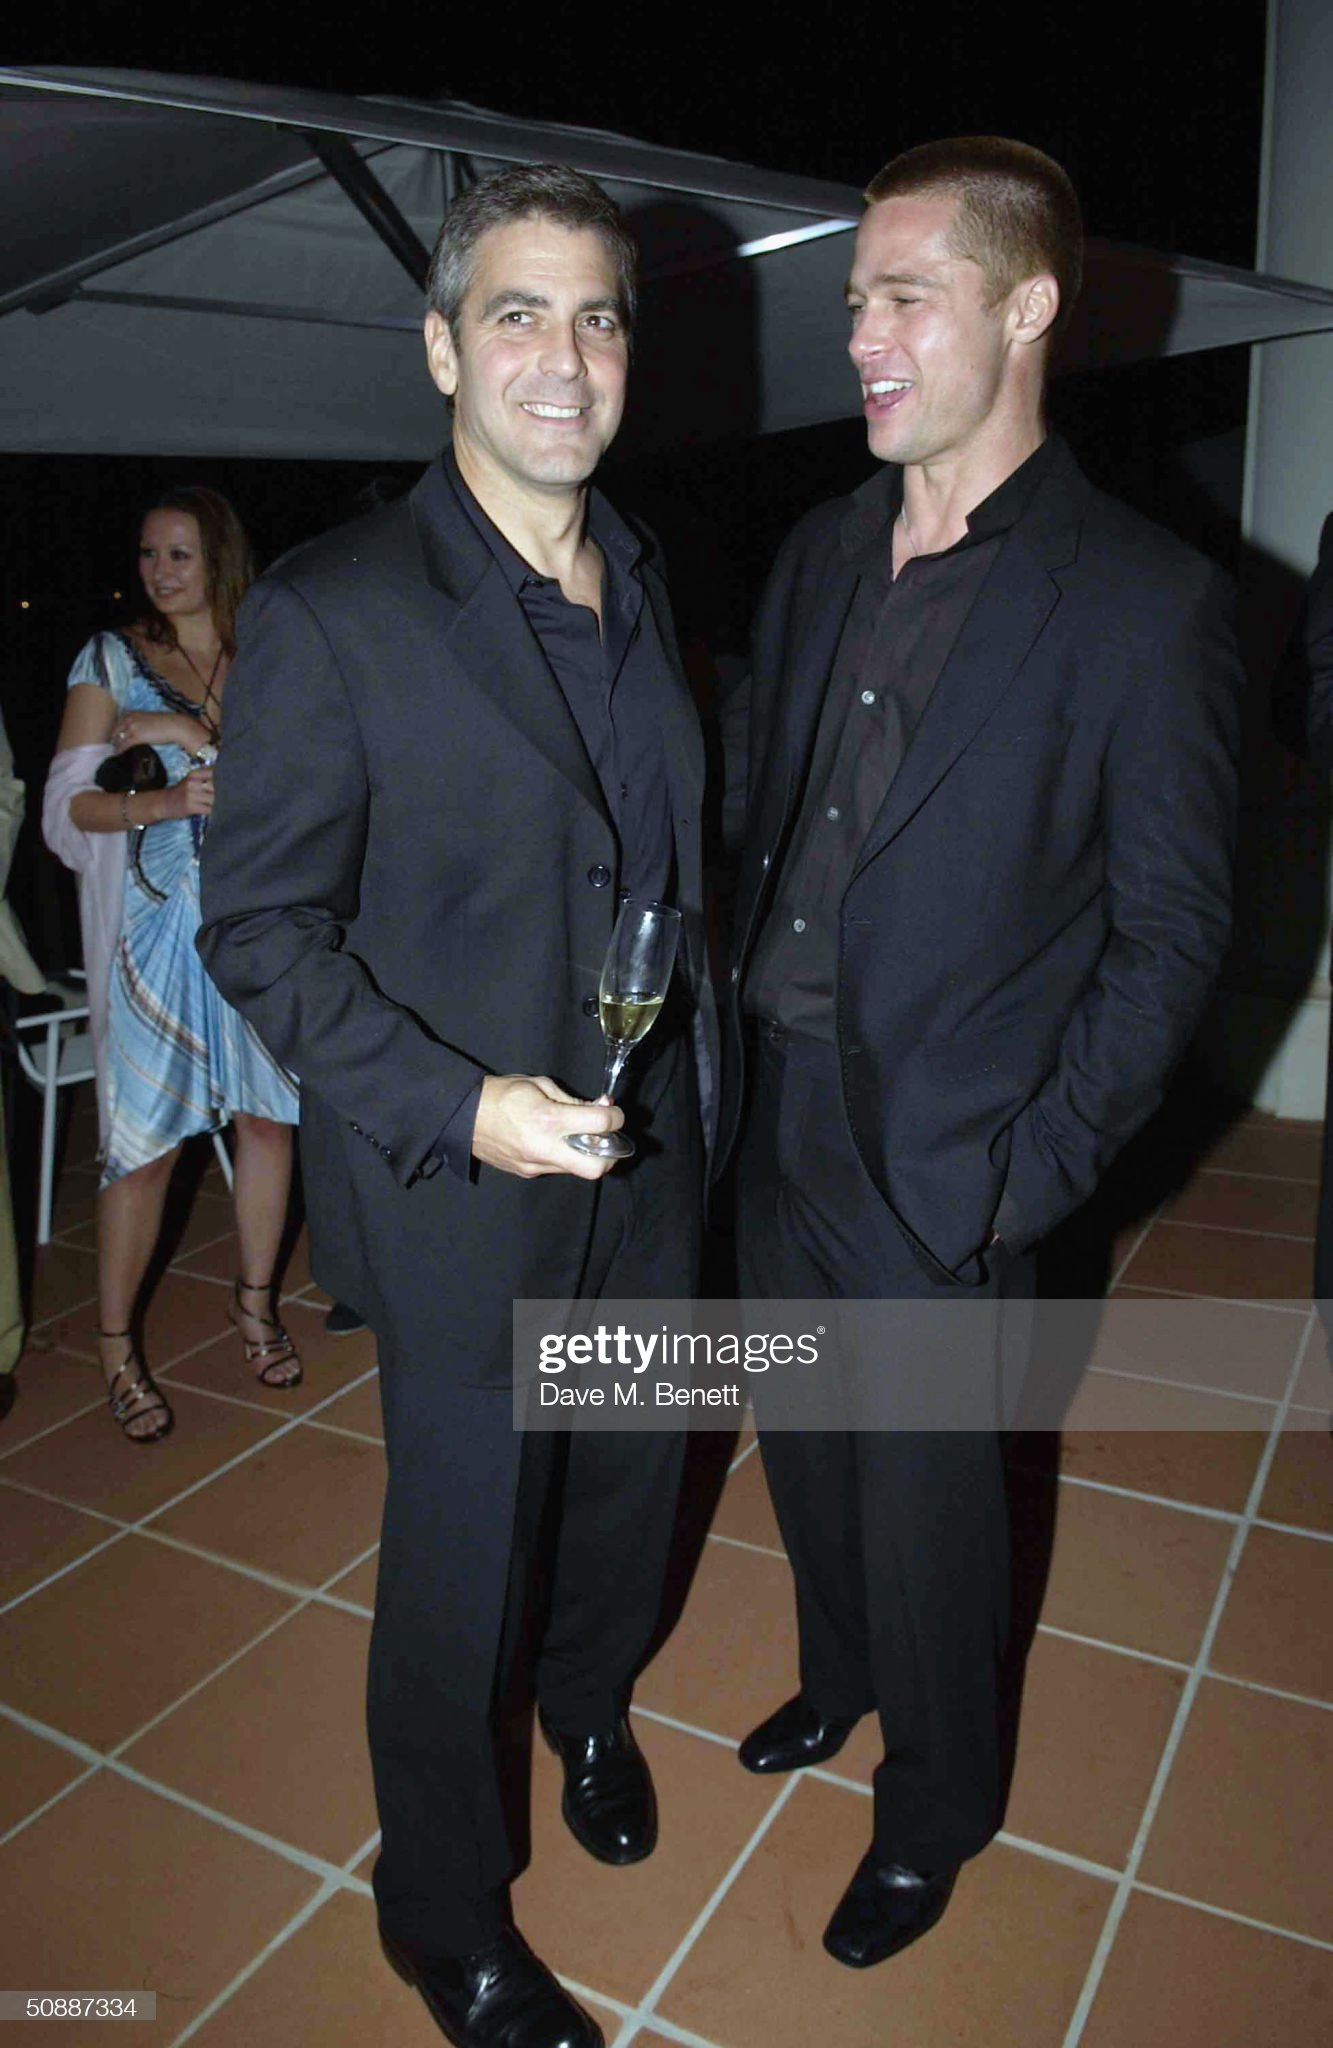 ¿Cuánto mide George Clooney? - Altura - Real height Actors-brad-pitt-and-george-clooney-attend-oceans12-dinner-at-karl-picture-id50887334?s=2048x2048